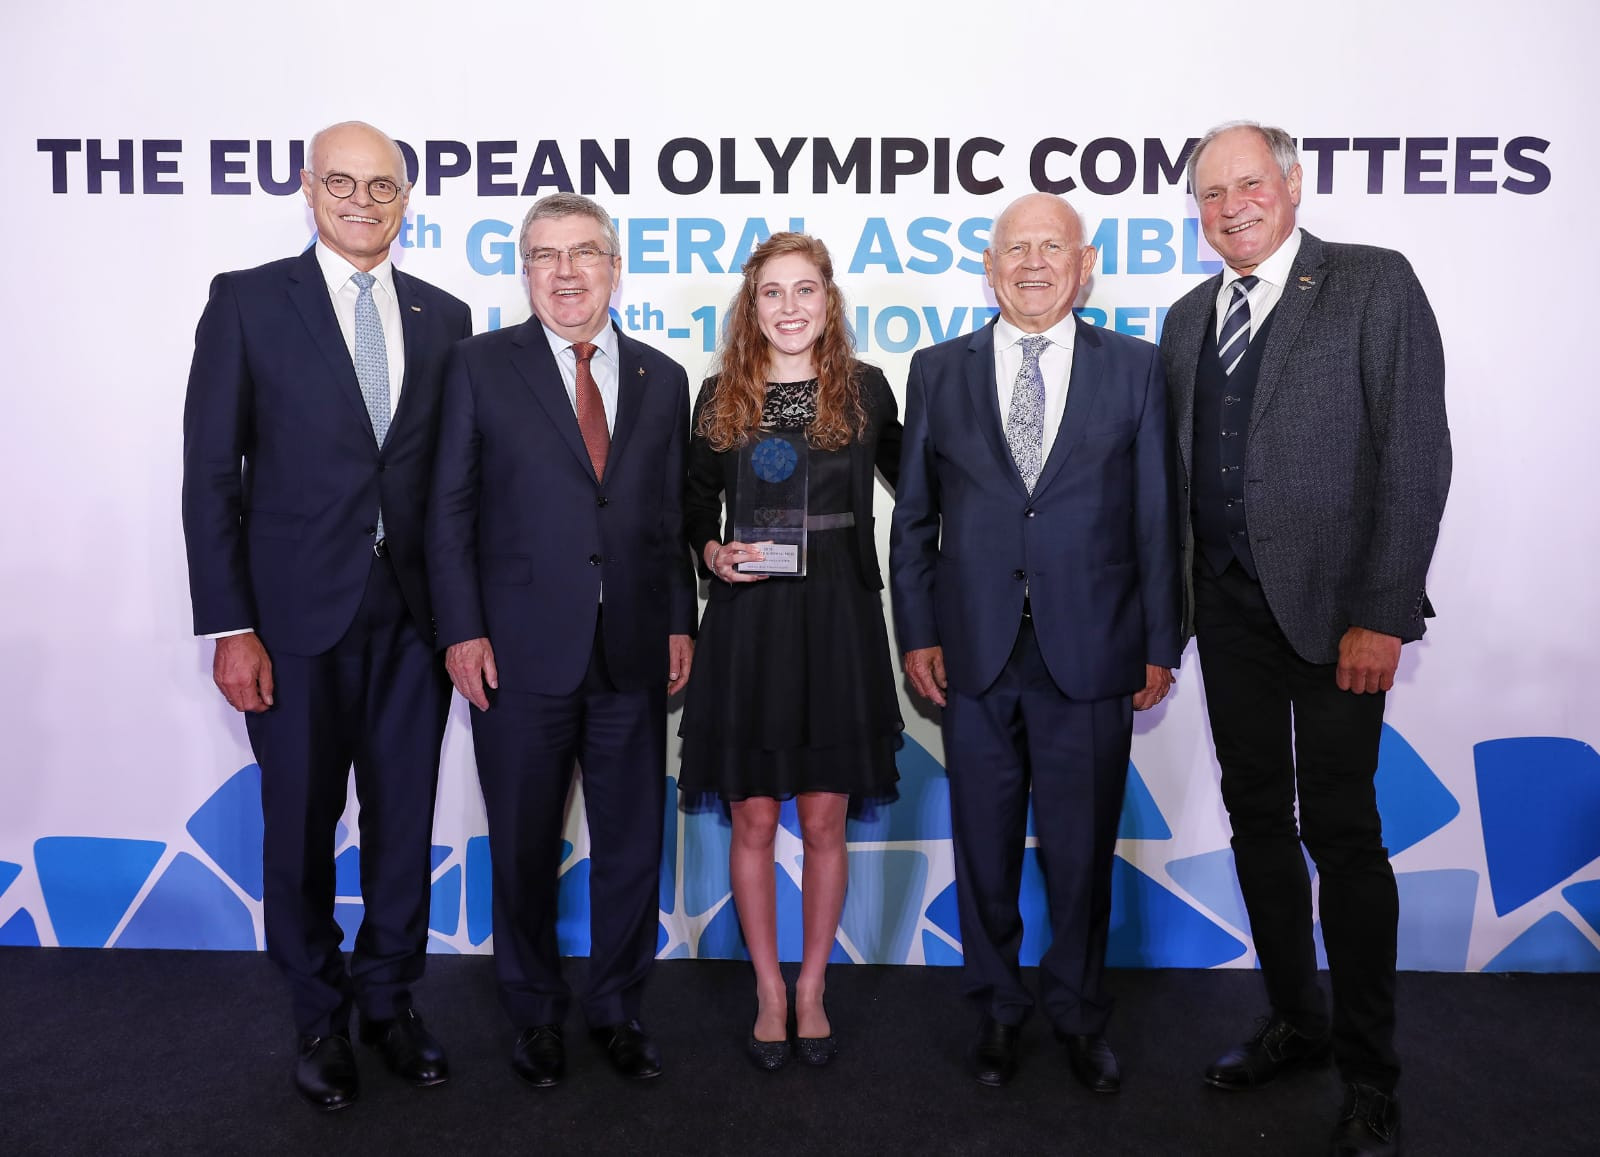 Austrian cyclist Stigger wins summer Piotr Nurowski prize for Europe's best young athlete